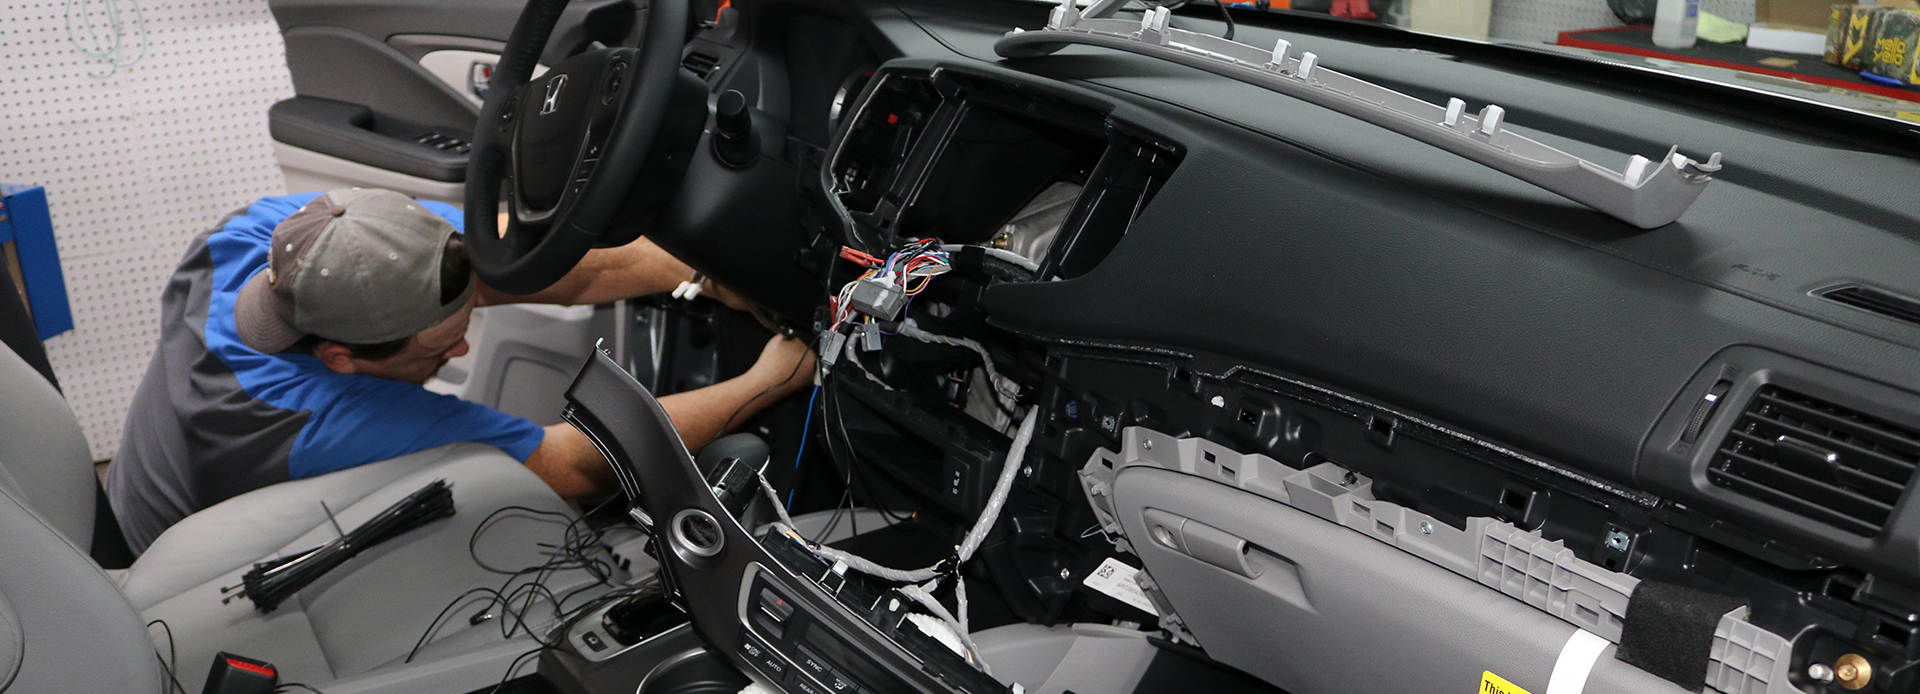 Car stereo installation, we do car audio in Nashville, car amplifier installation in Nashville, TN, call Cartronics today!